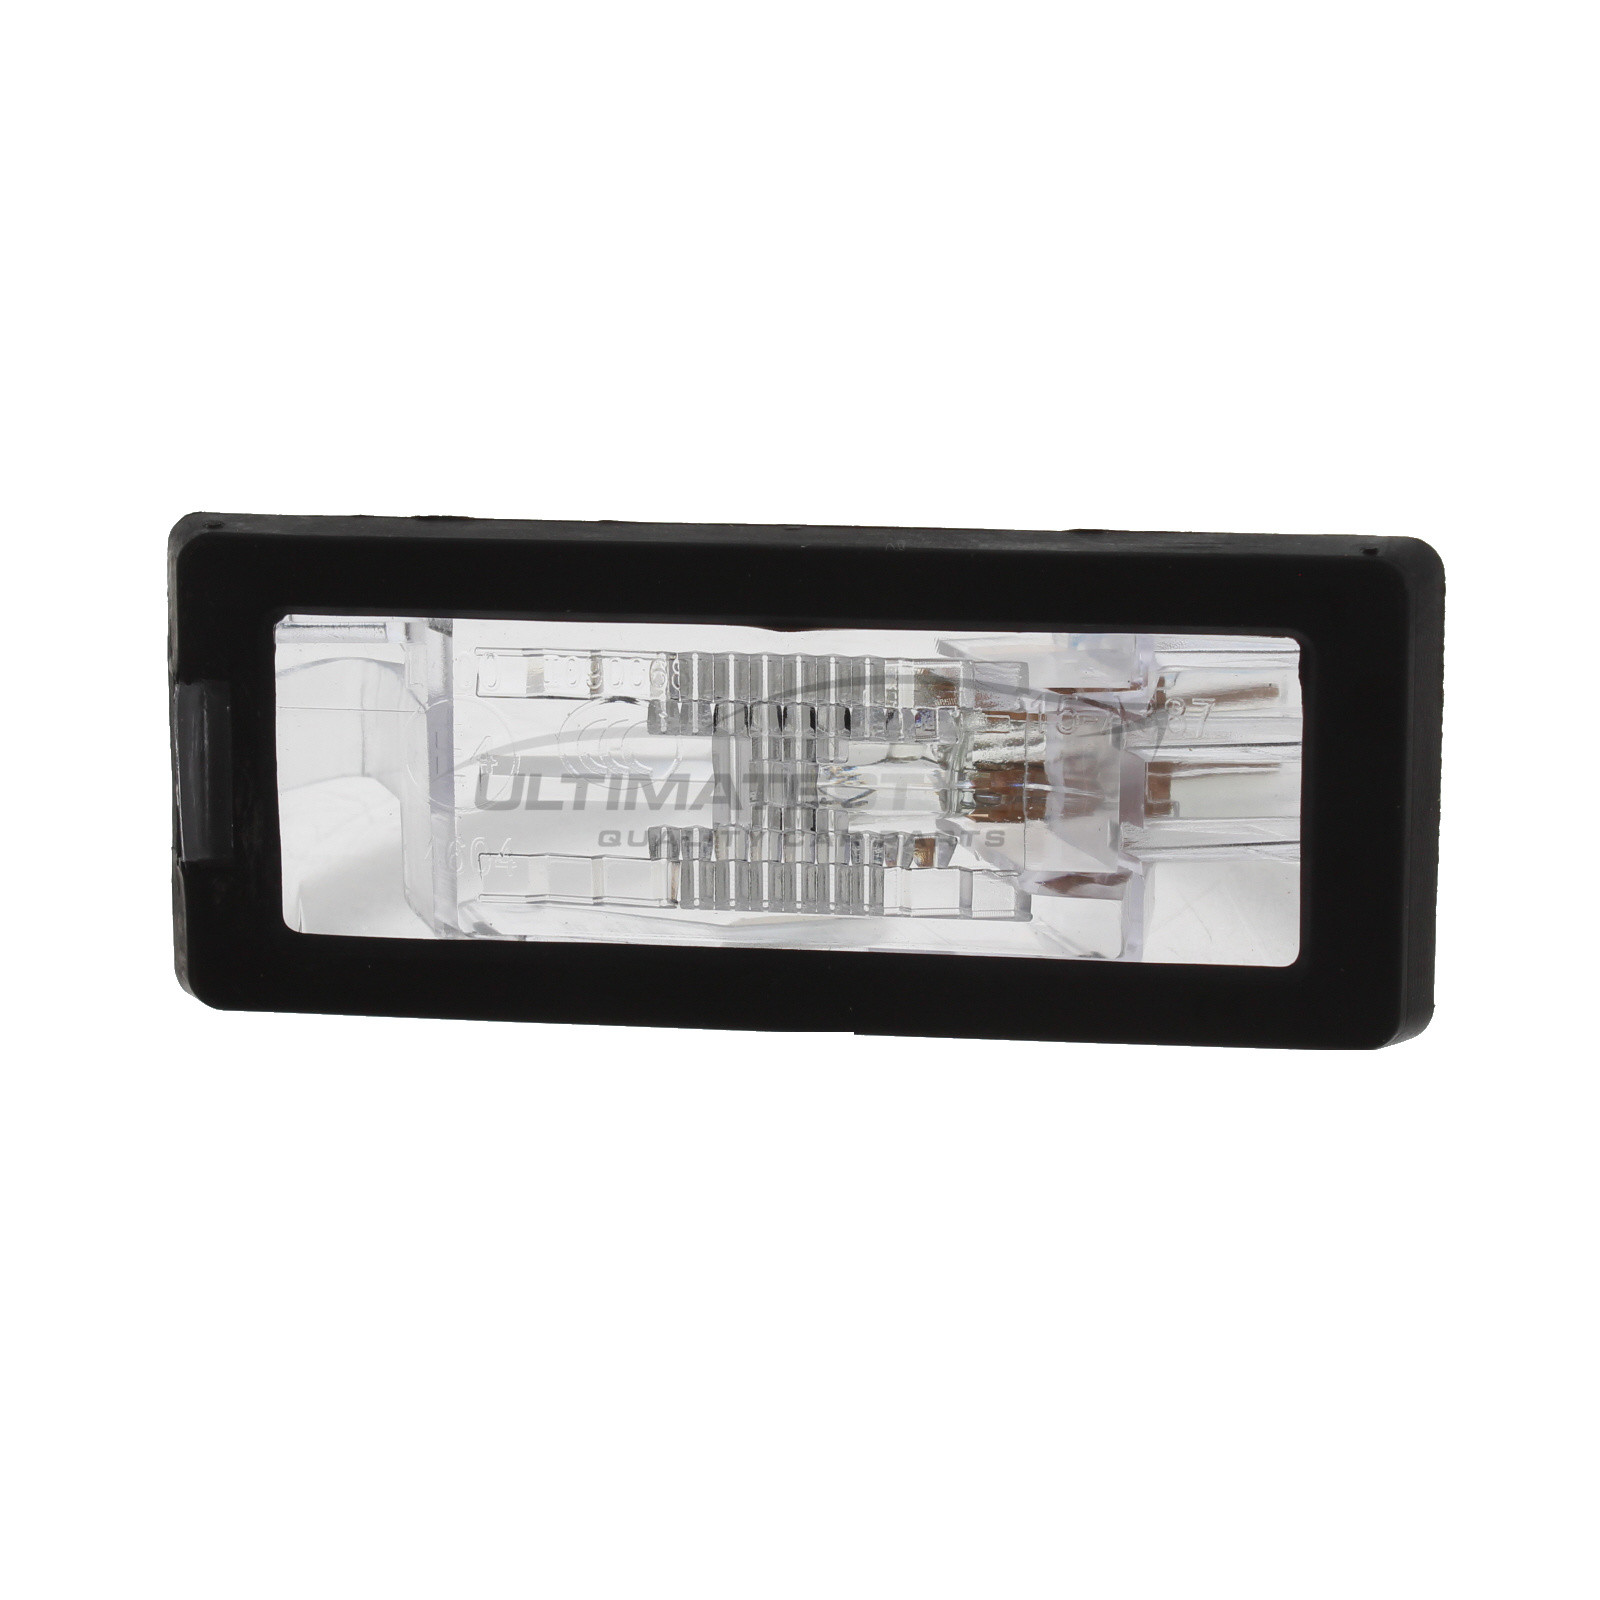 Dacia Duster / Logan, Renault Captur / Laguna / Modus / Scenic Rear Number Plate Light - Universal (LH or RH)